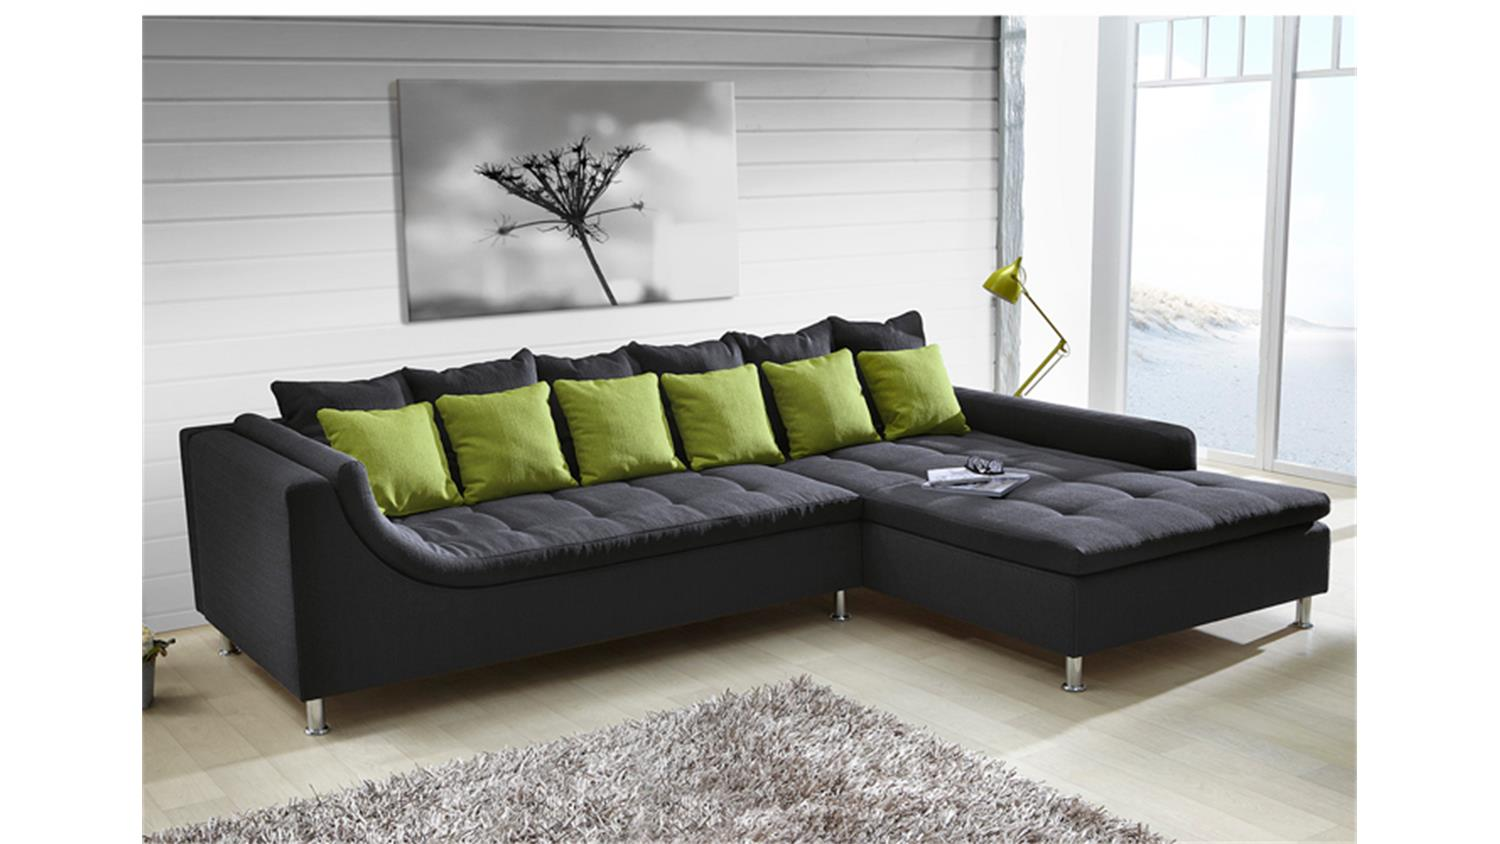 ledersofa dunkelgrau. Black Bedroom Furniture Sets. Home Design Ideas